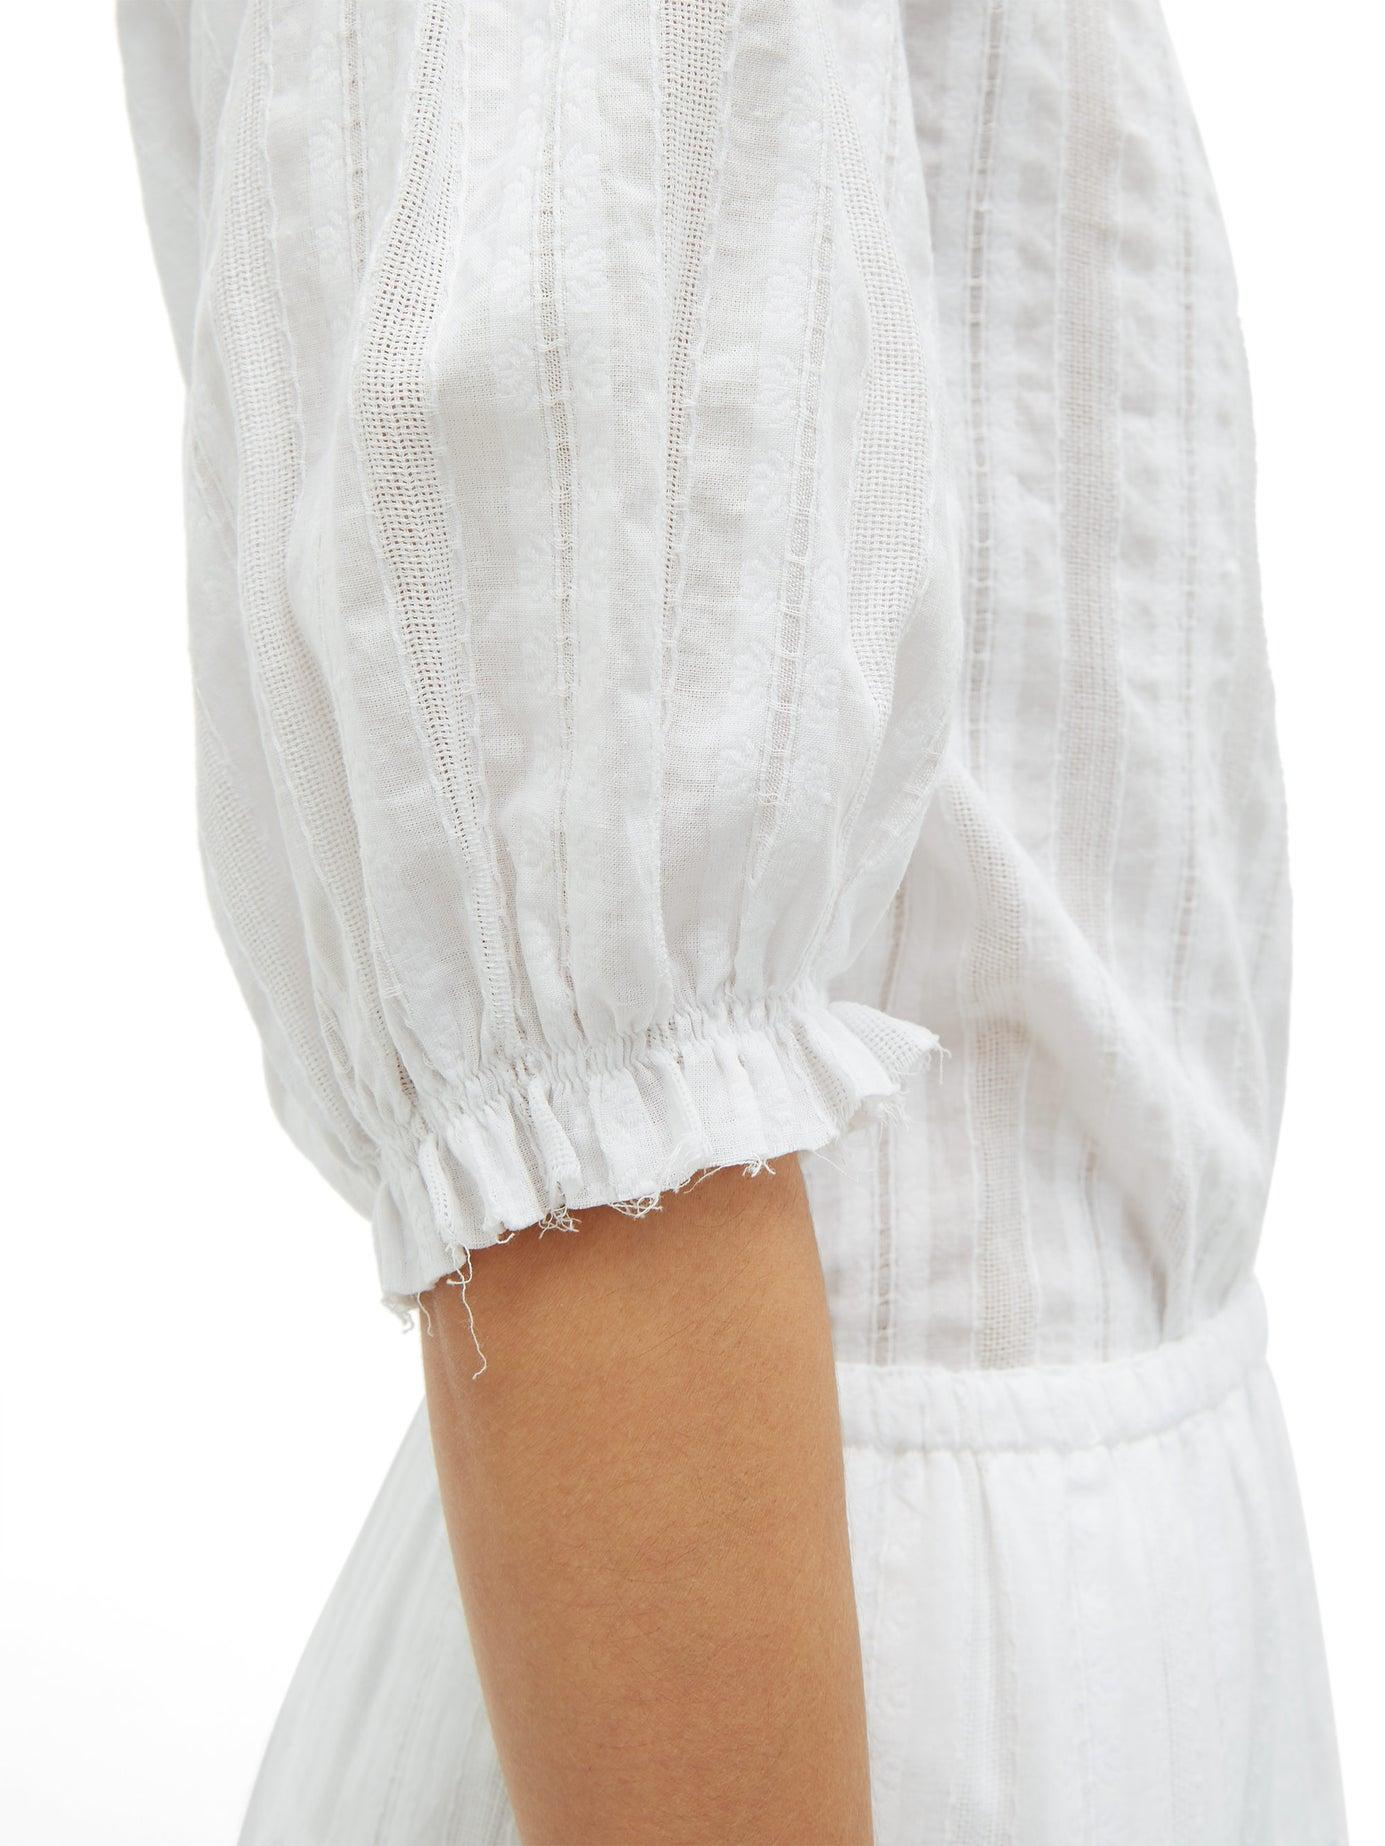 NYDJ Embroidered Peasant Blouse Tassels White Red Cotton NWT $108 Size Medium